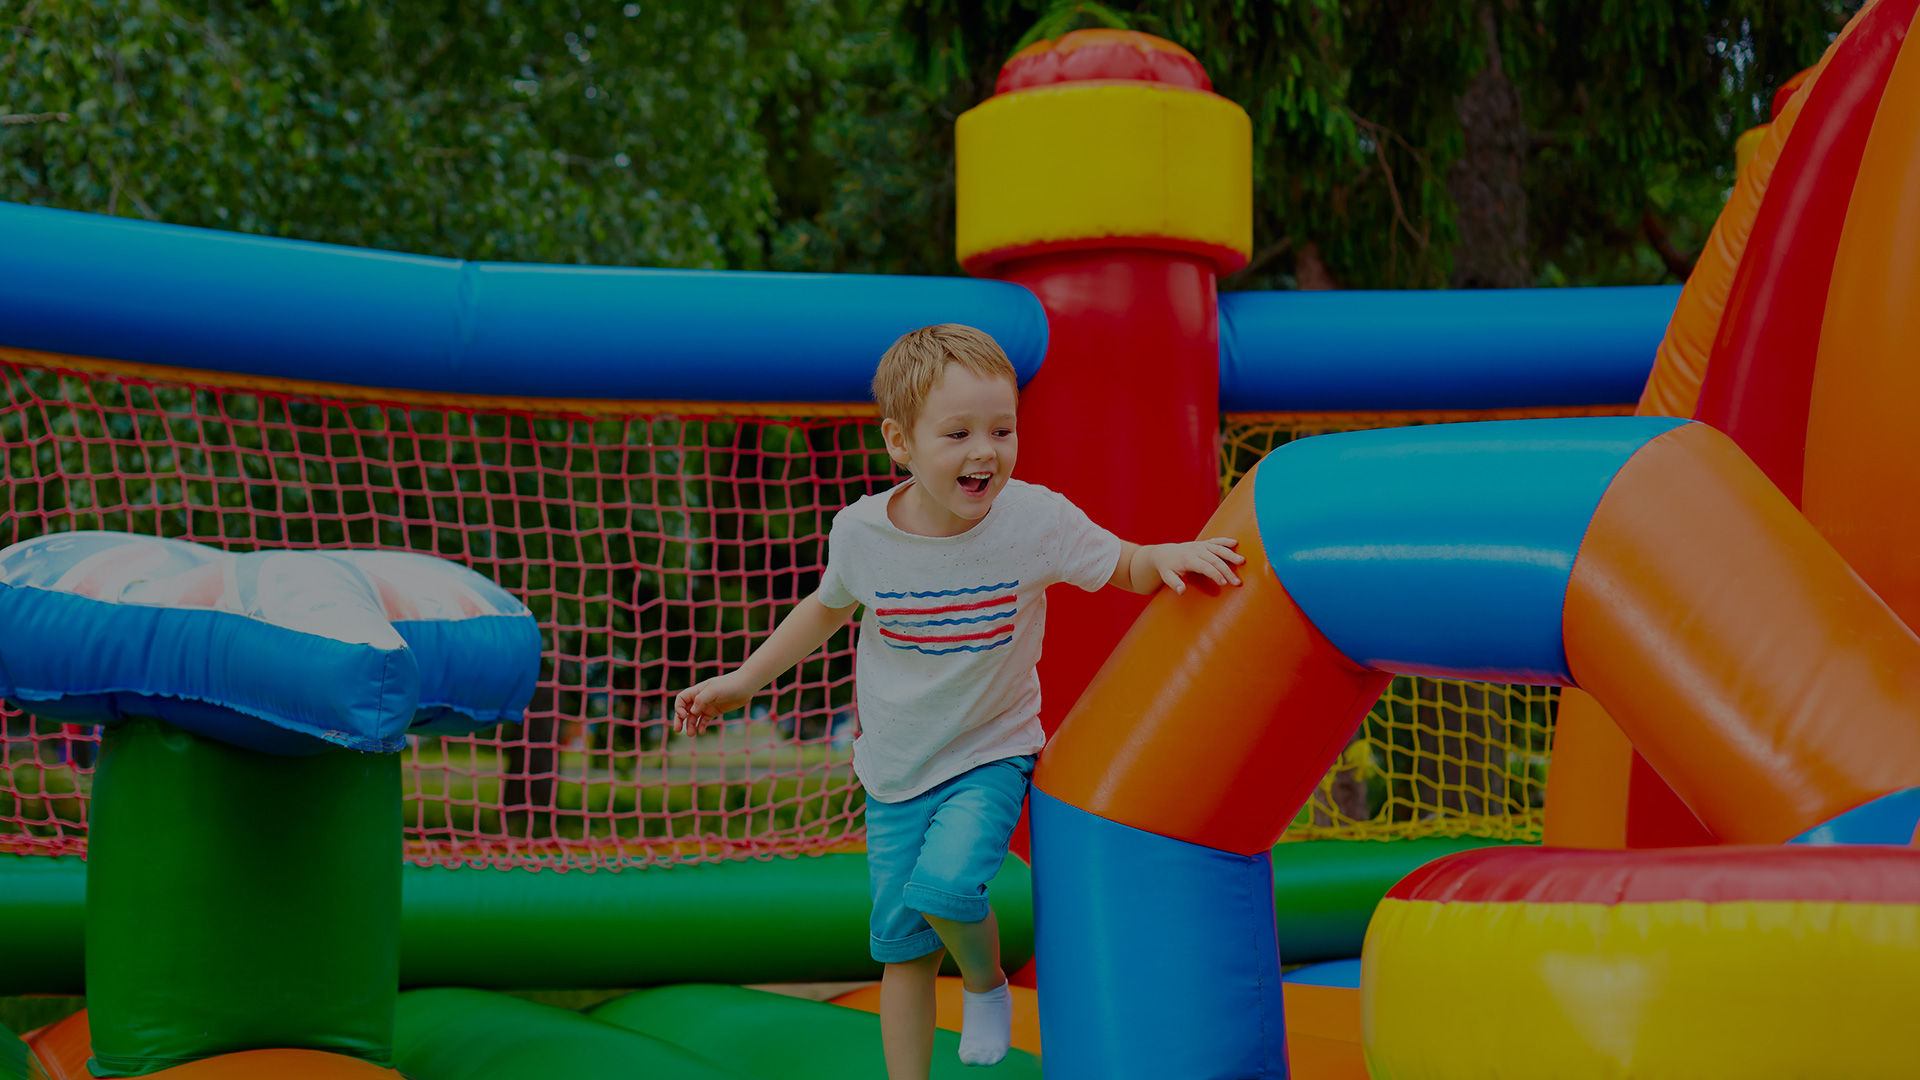 Kids jumping castles will bring out the potential in your child